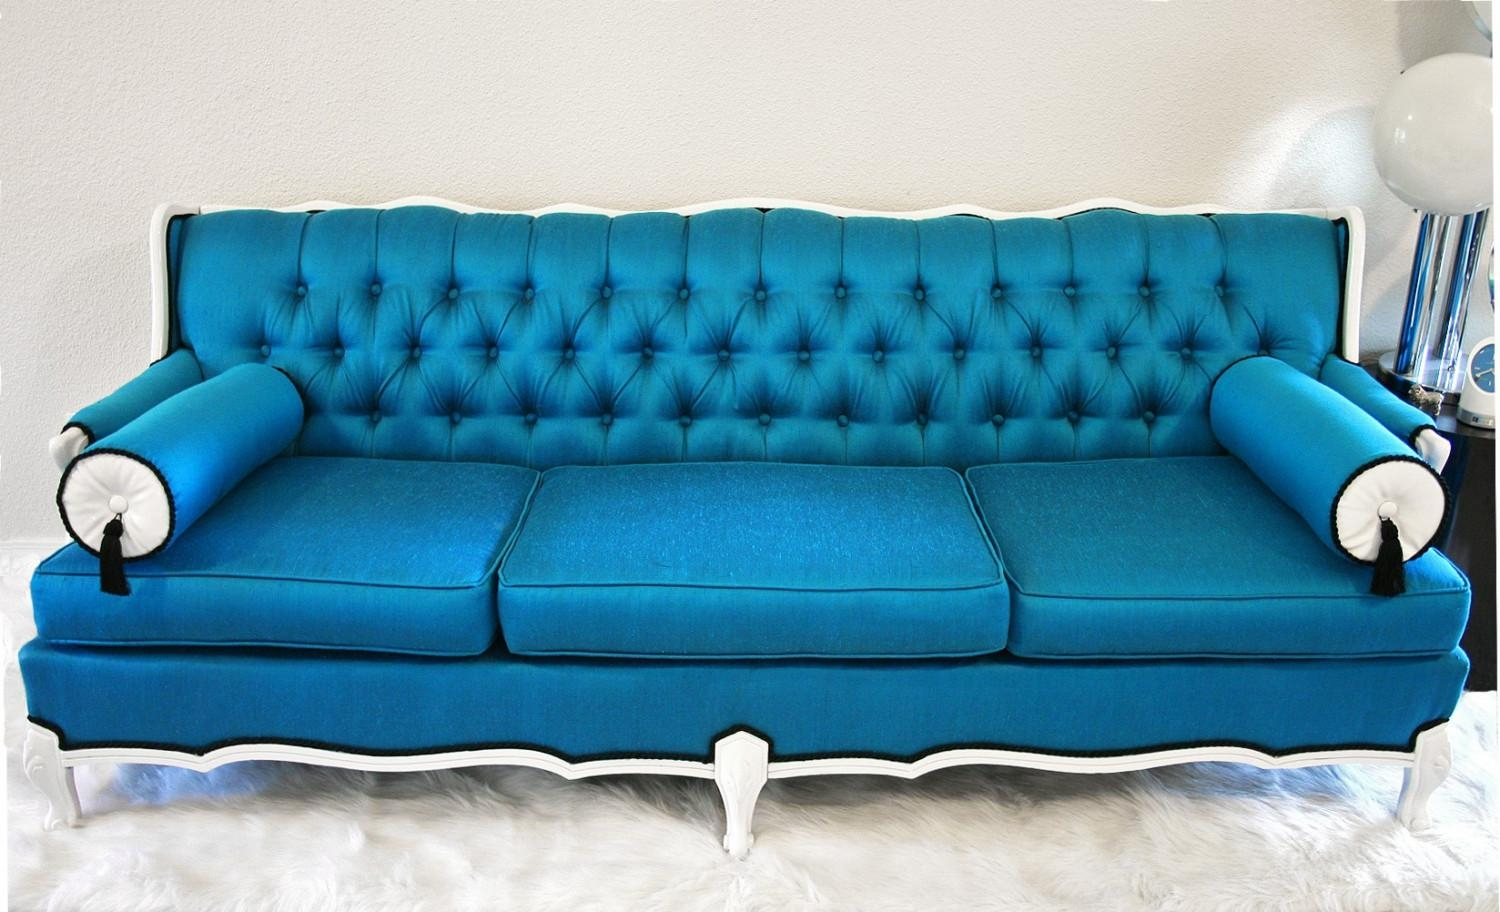 Fresh Texas Light Blue Tufted Sofa #11129 Pertaining To Blue Tufted Sofas (Image 8 of 22)